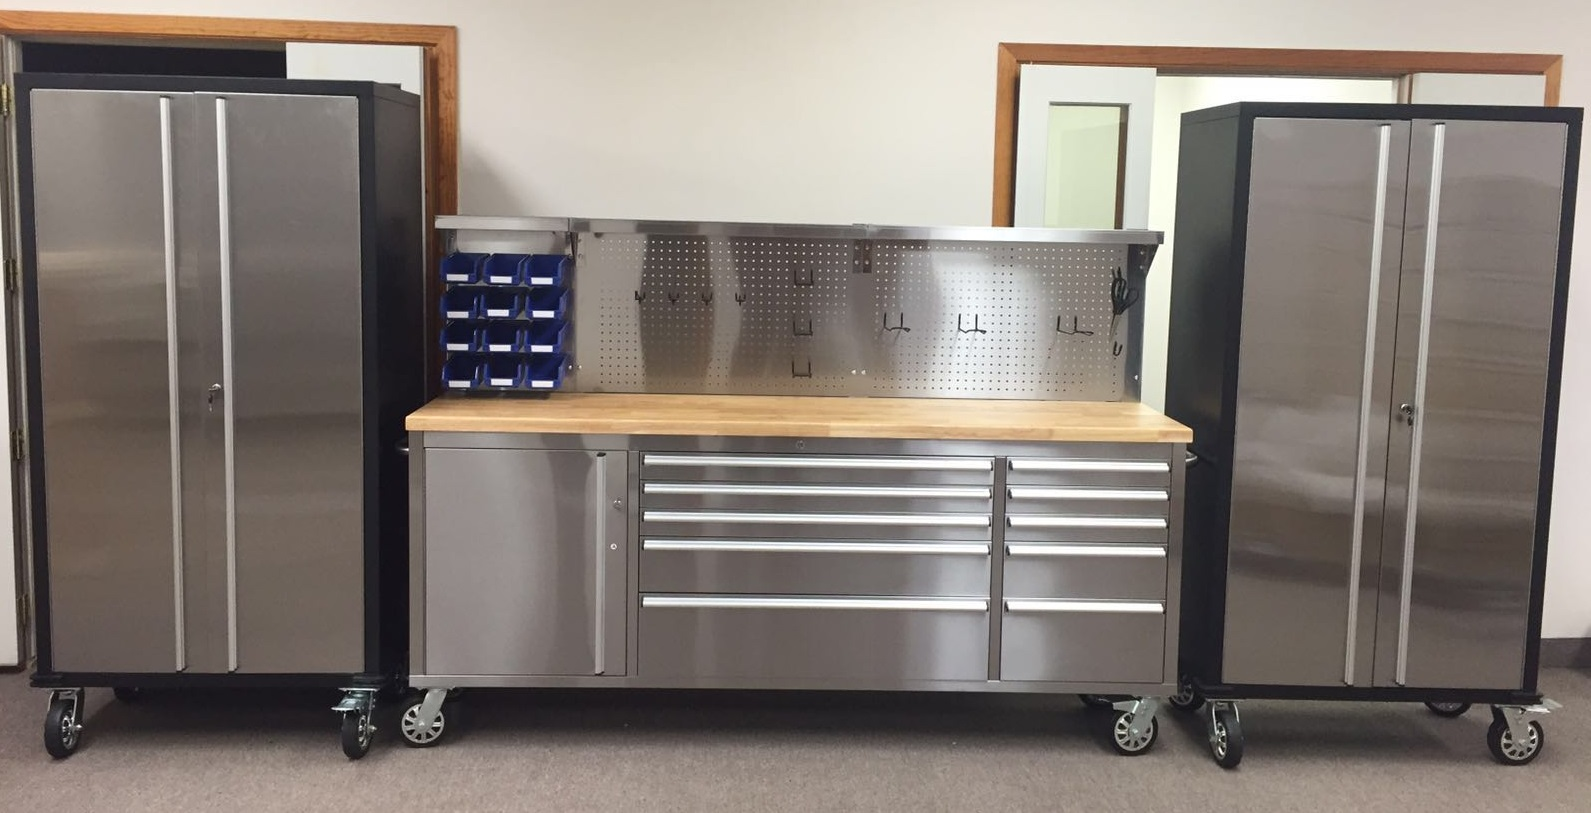 84 In Stainless Steel Bench Led Amp 2 72 In Cabinet Combo